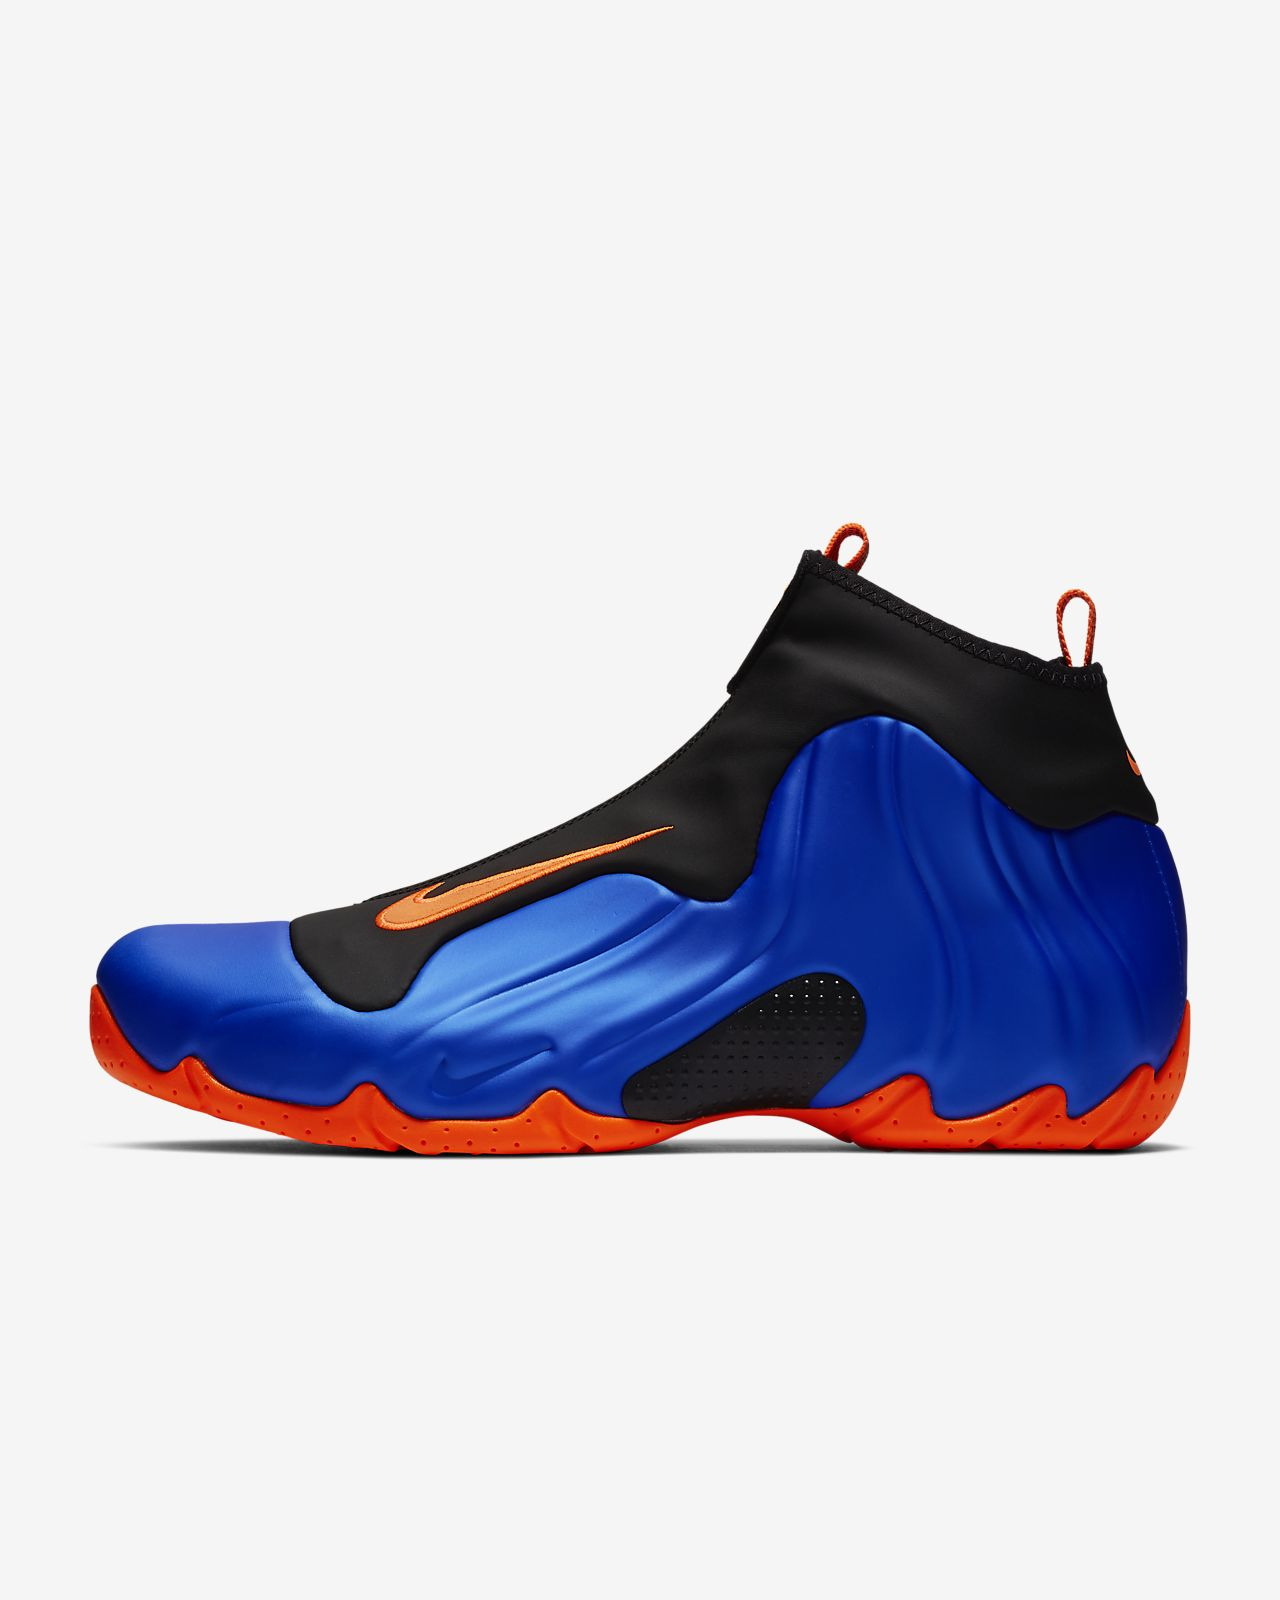 Nike Air Flightposite Men's Shoe